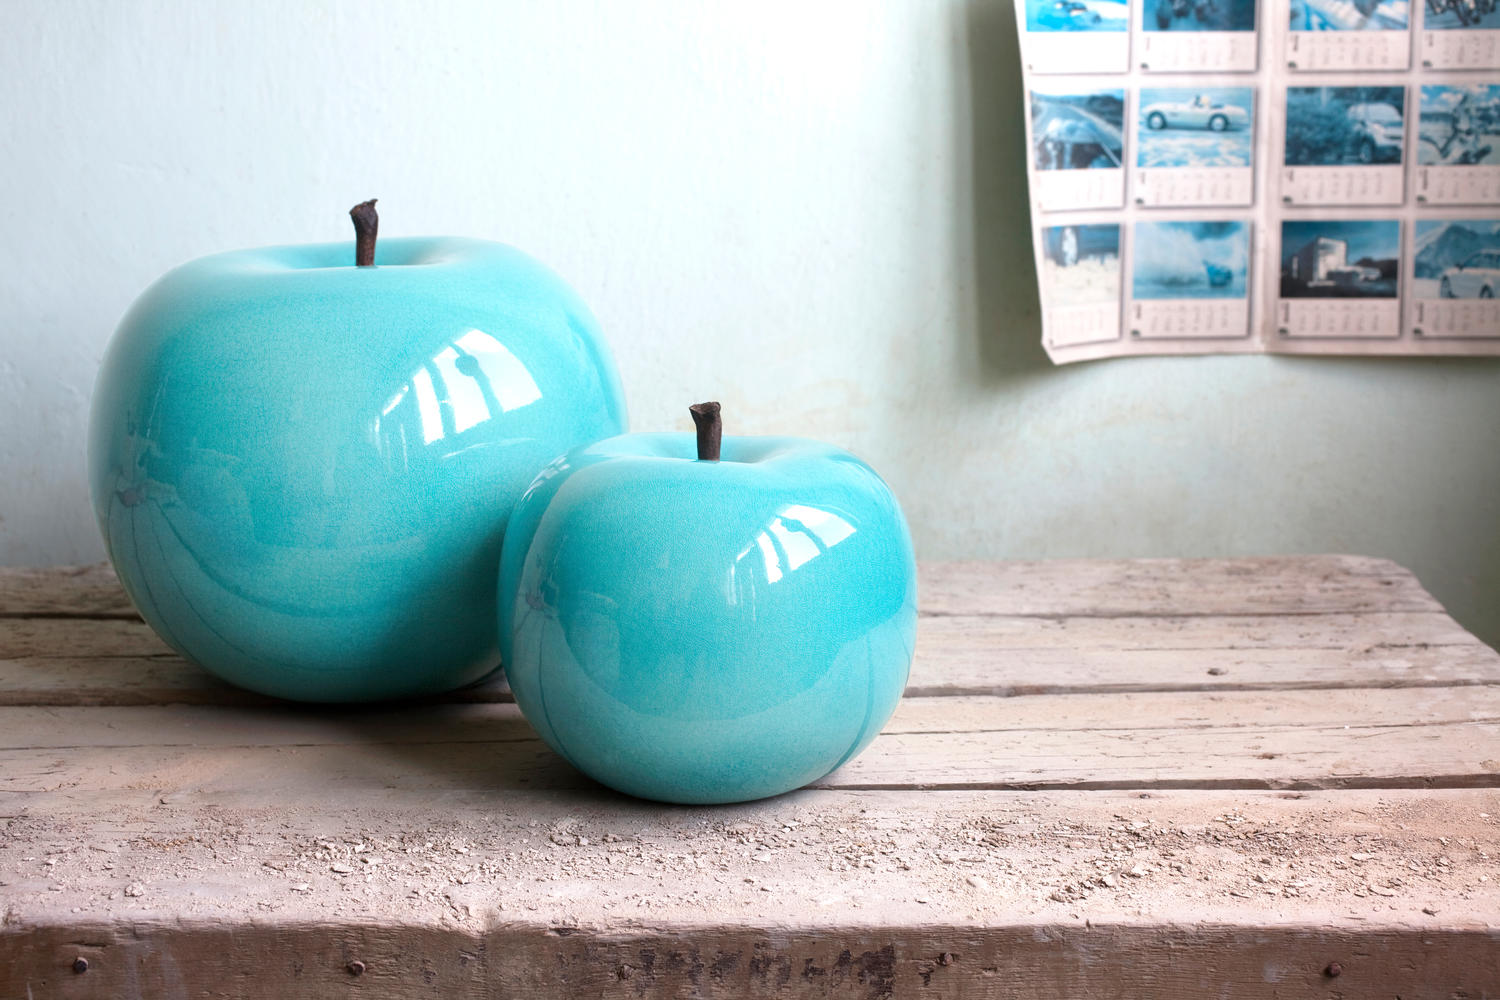 Turquoise glazed apple sculptures